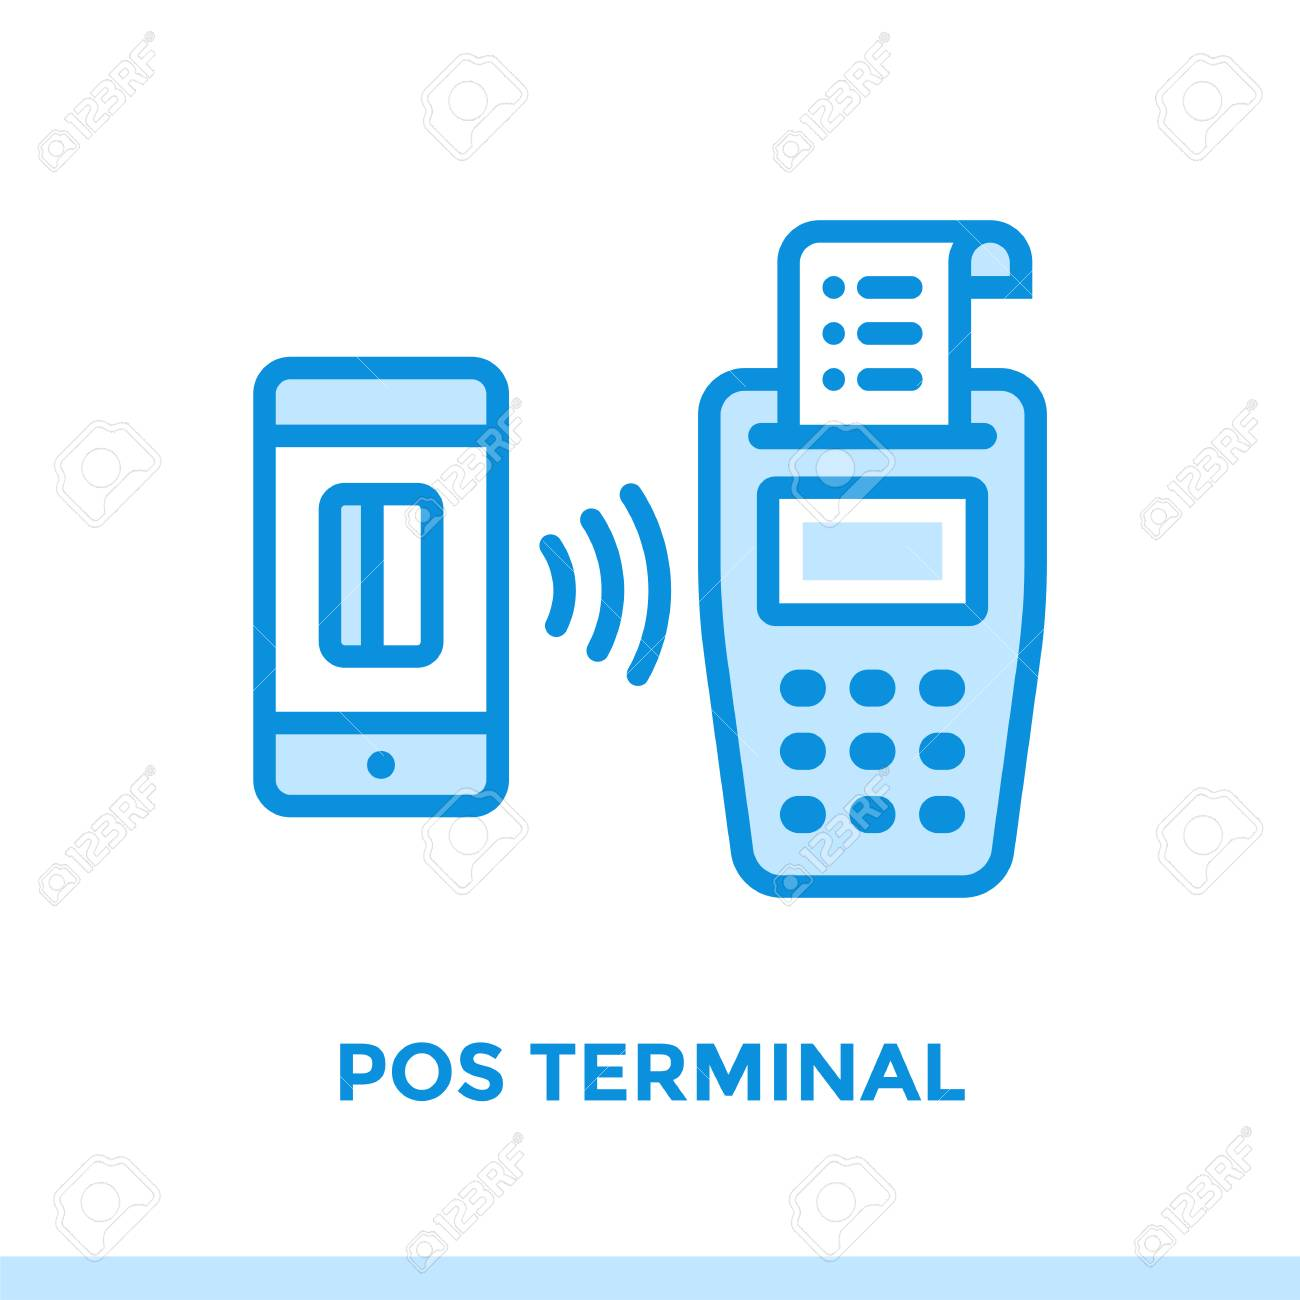 Linear Icon POS TERMINAL Of Finance, Banking. Suitable For Mobile ...